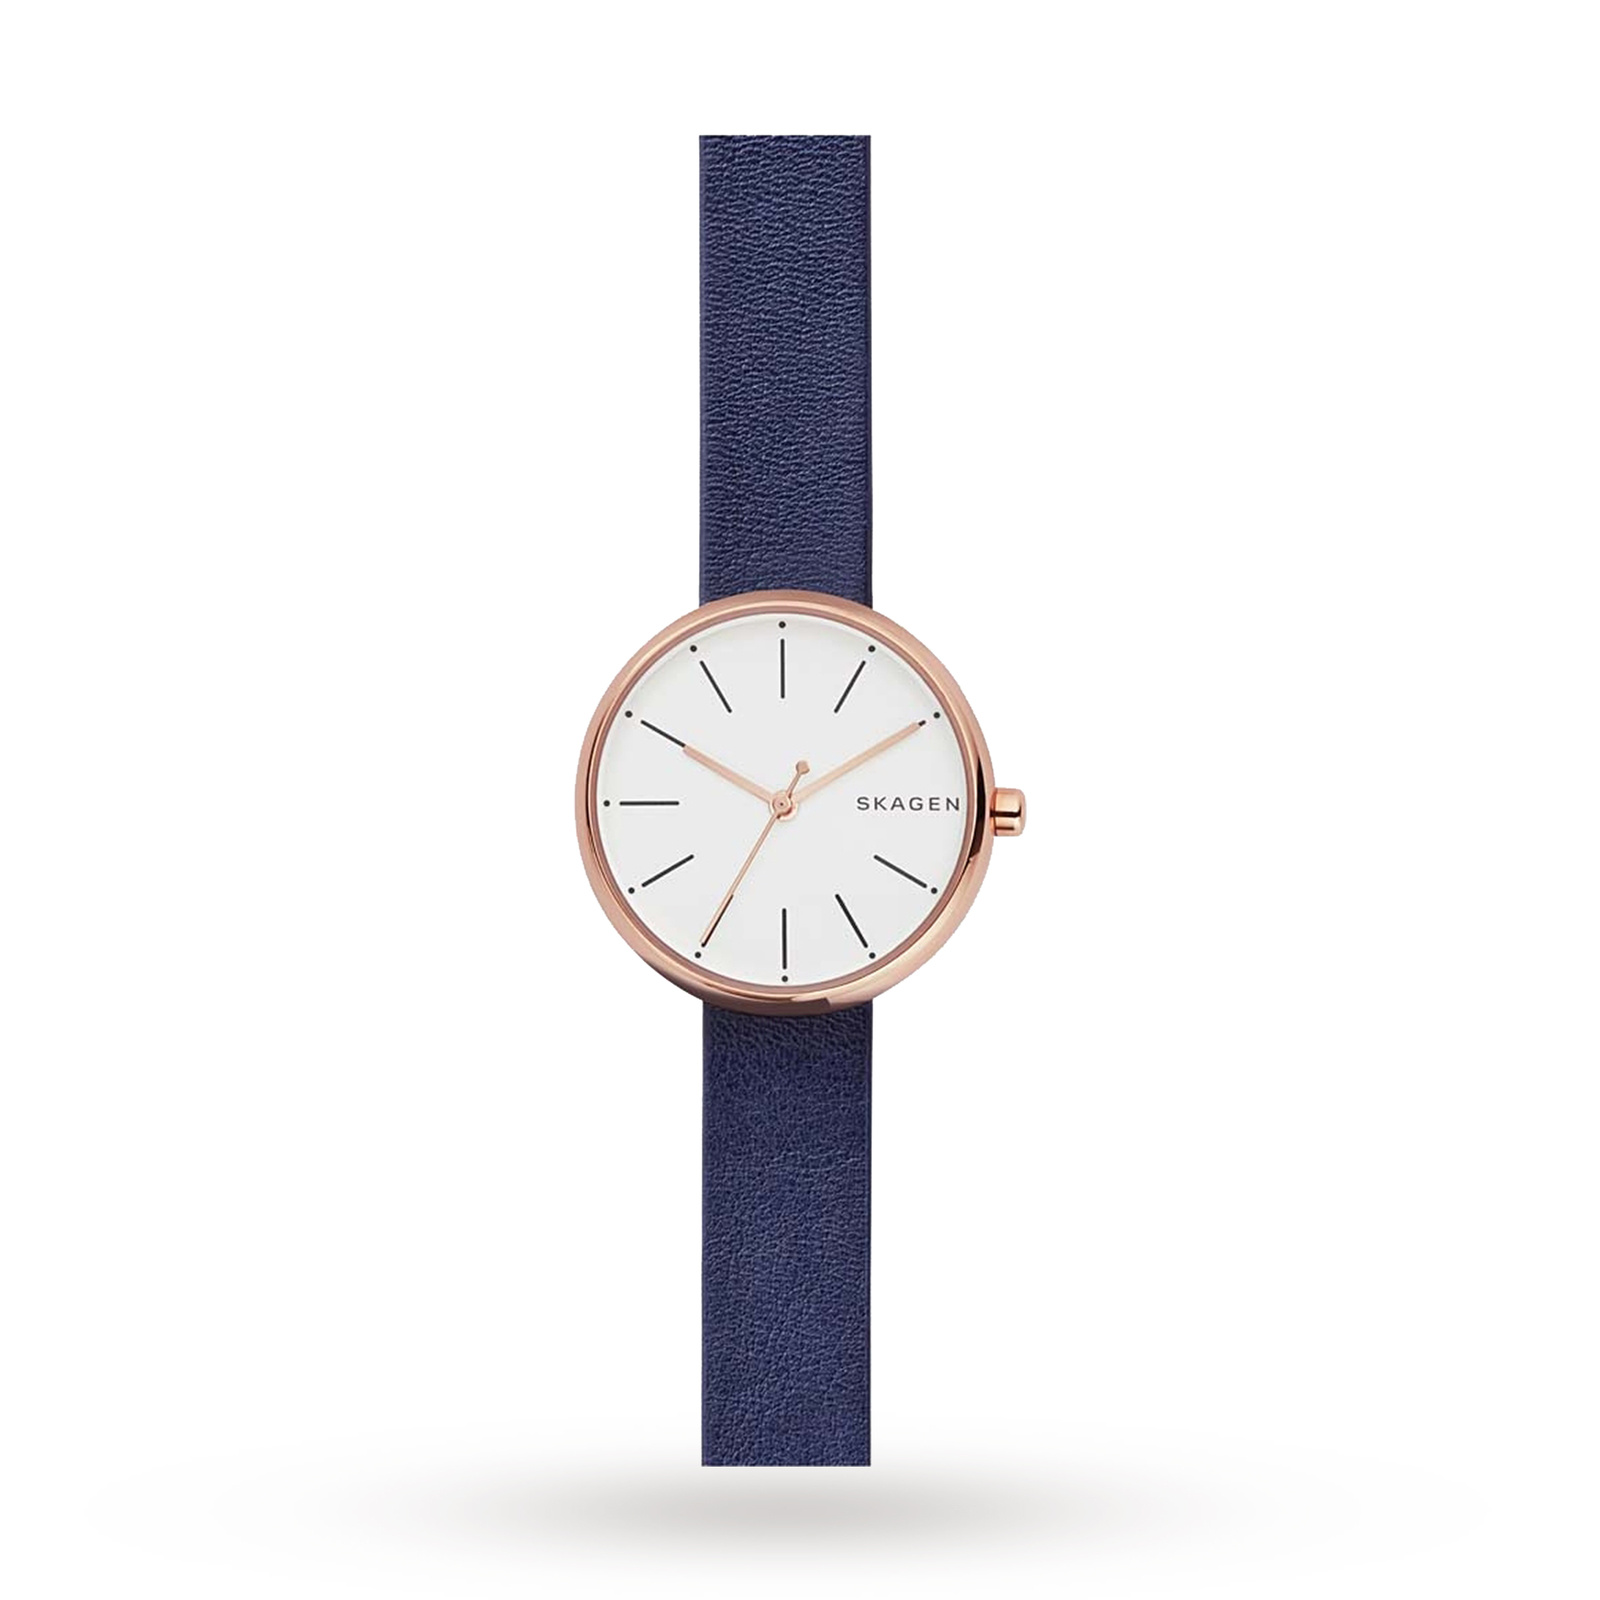 Skagen Ladies Signature Watch